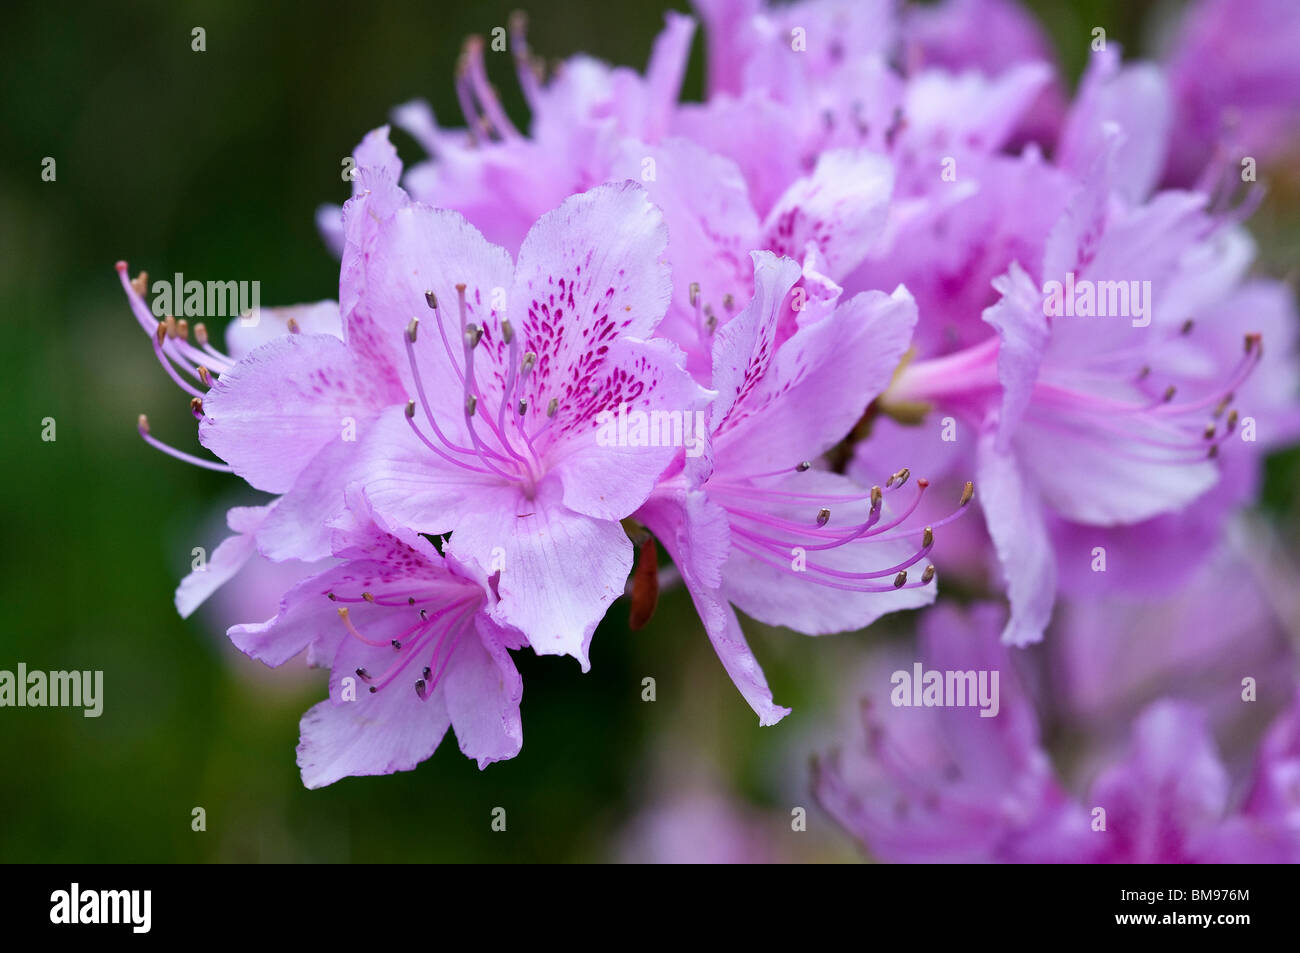 Rhododendron | Rhododendron spec. - Stock Image